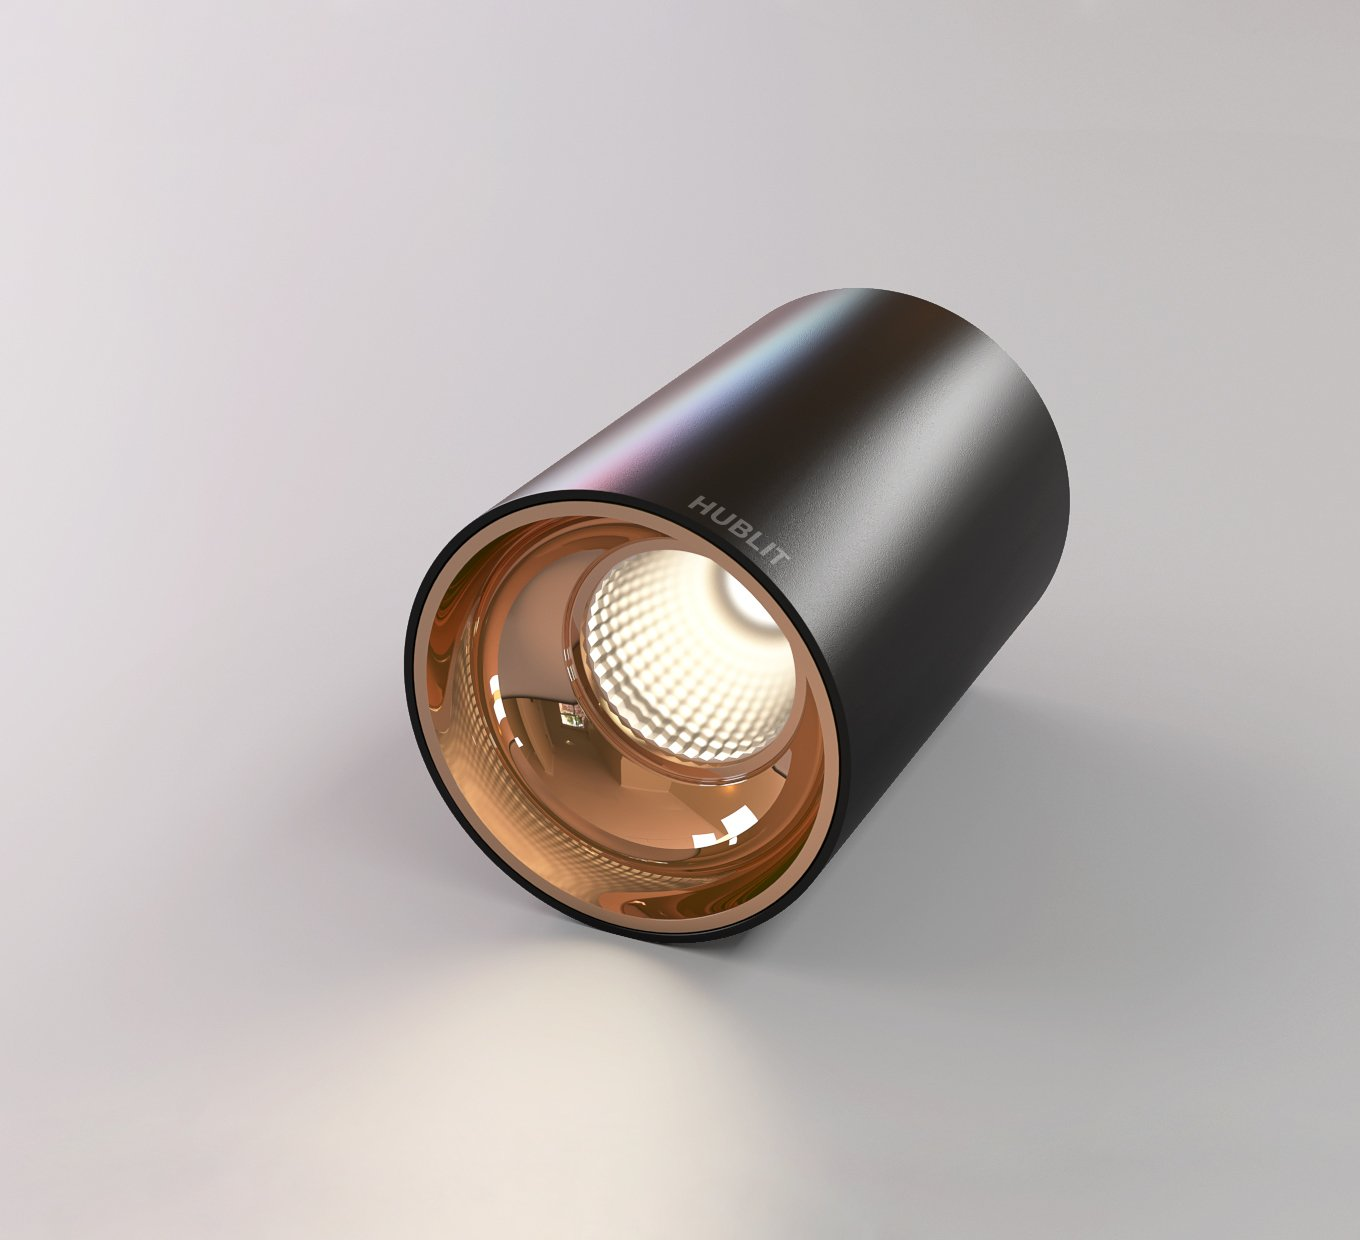 Cample LED Spot Lights Black And White Colour Online